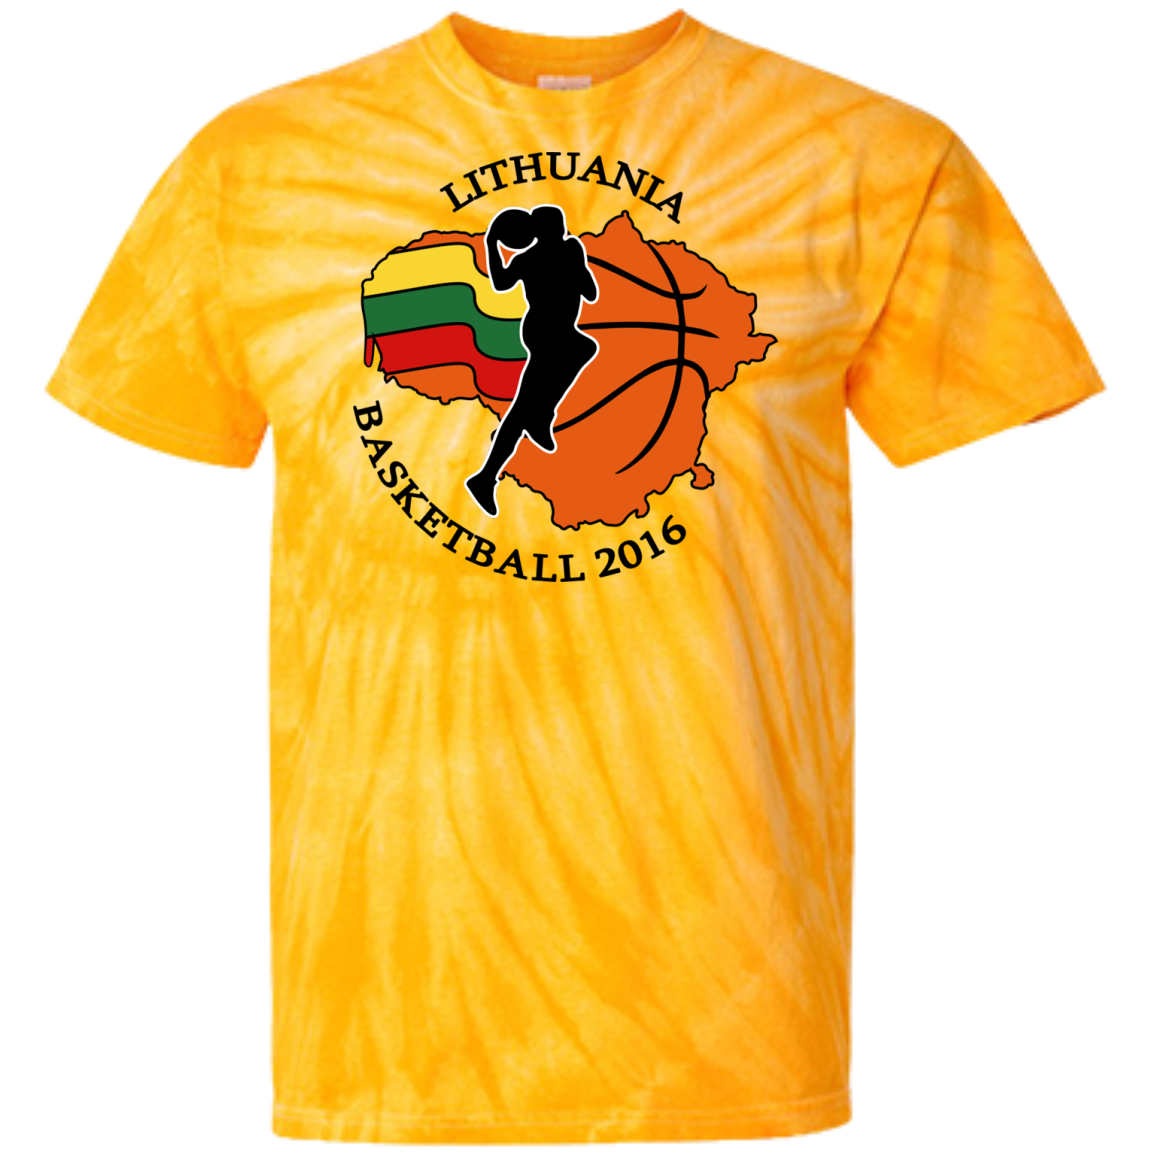 Lithuania Basketball 2106 -- Guys/Gals Tie Dye